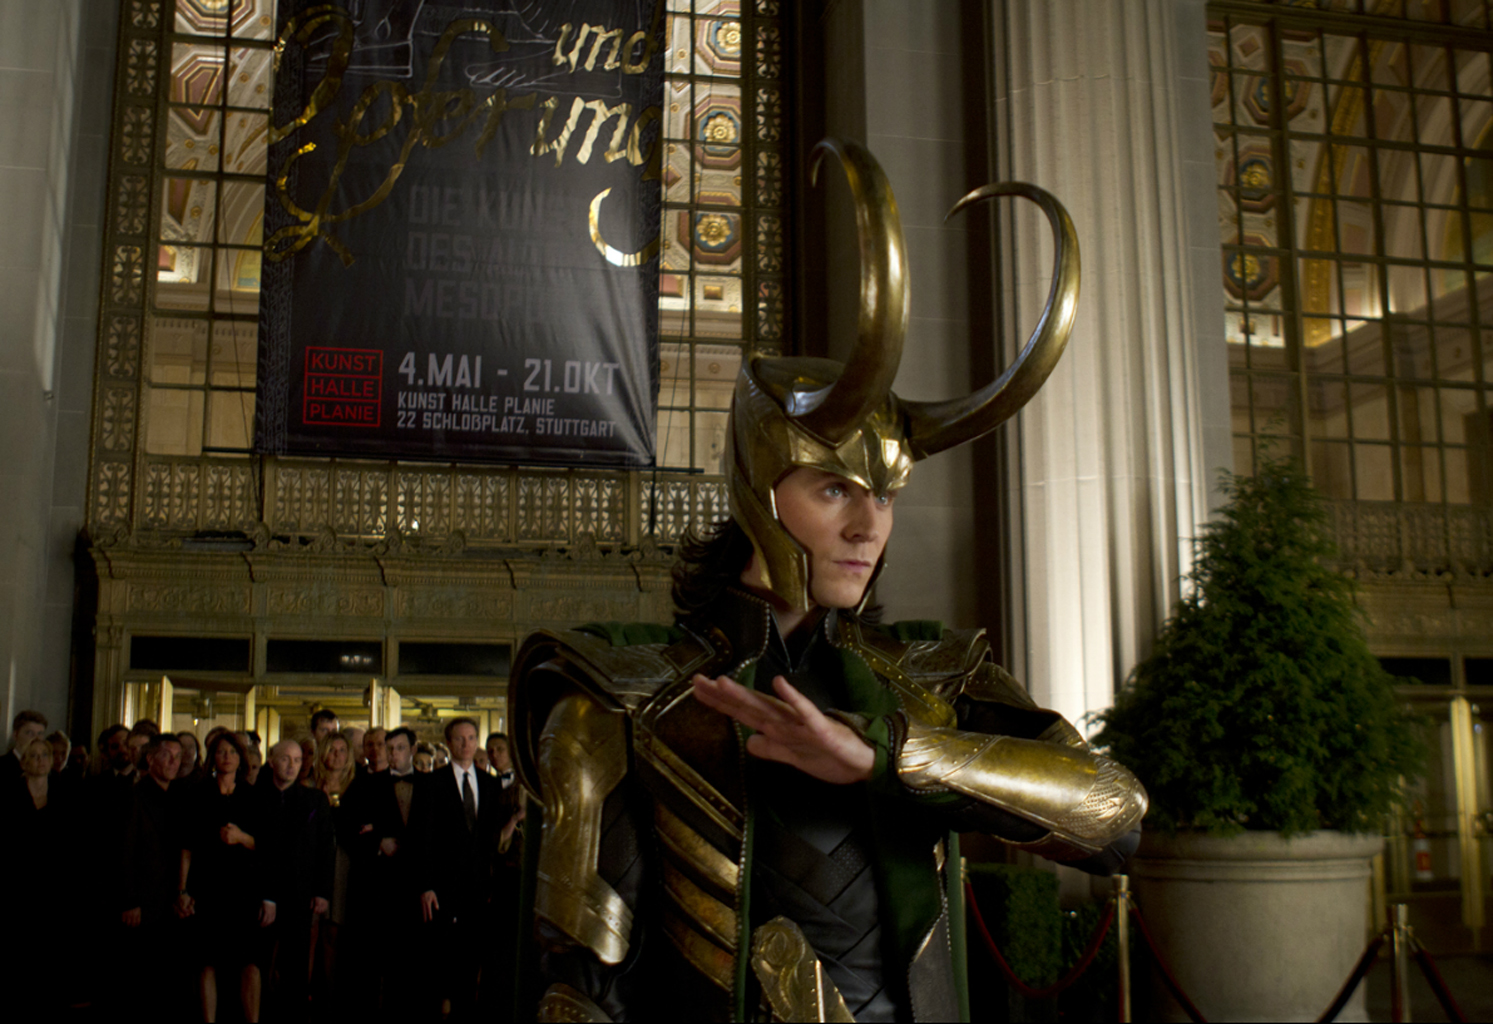 http://3.bp.blogspot.com/-NxVhatBylkc/T62JCowUhqI/AAAAAAAADaI/qzXFtHVjDBw/s1600/Marvel-The-Avengers-Movie-2012-HD-Wallpaper-loki-51.jpg